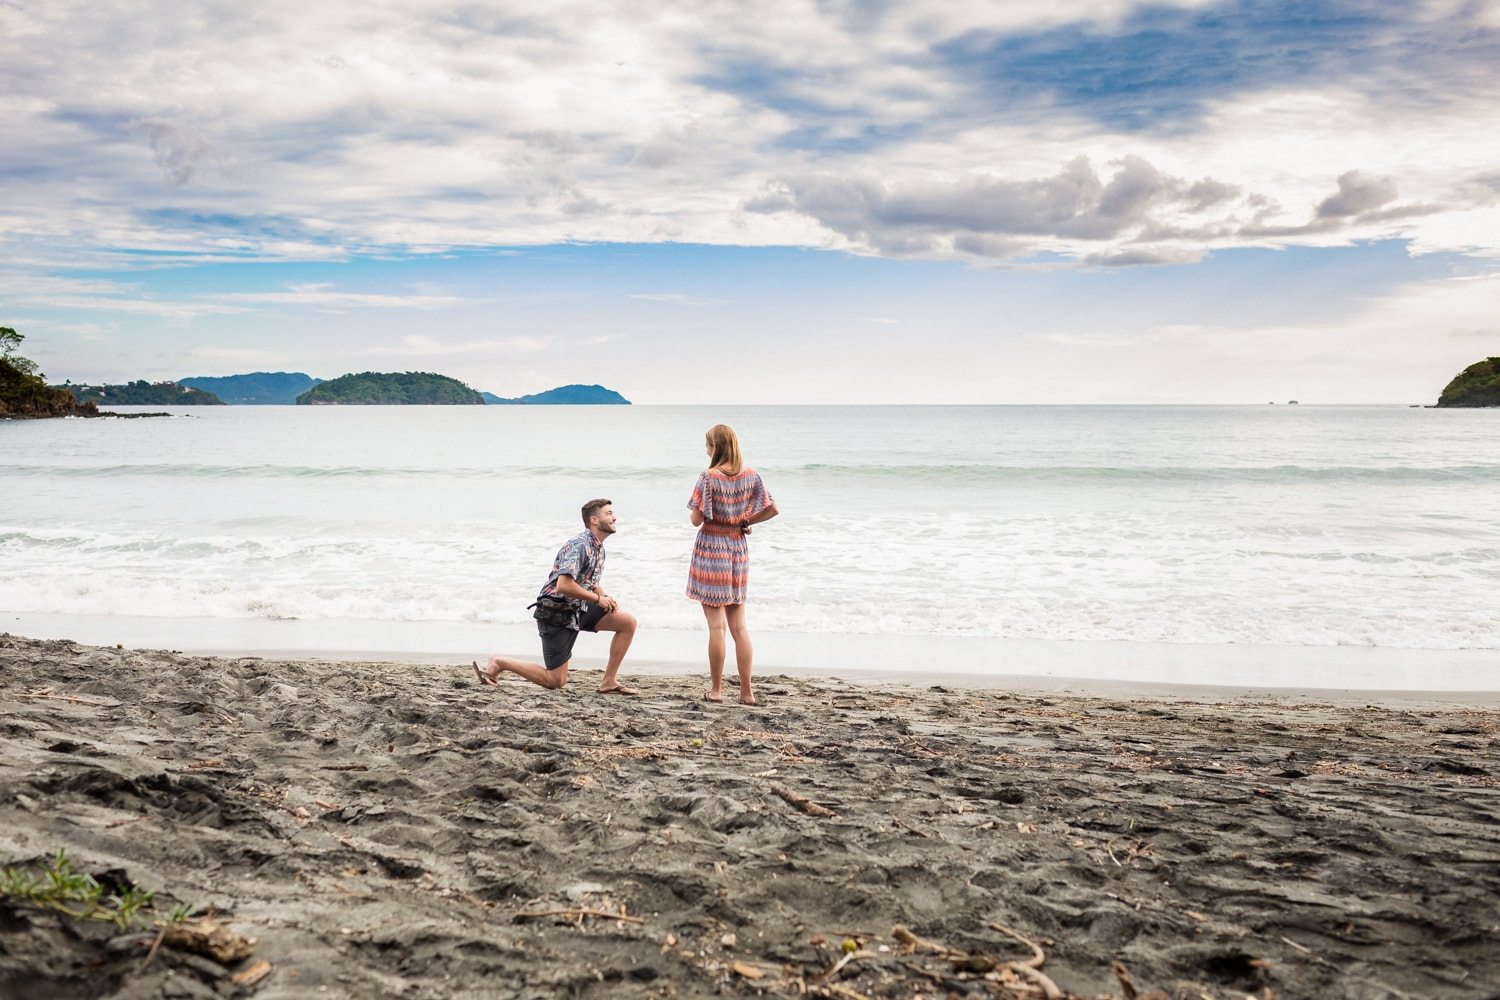 Erin-Seth-engagement-session-Las-Catalinas-Beach-Costa-Rica-1.jpg